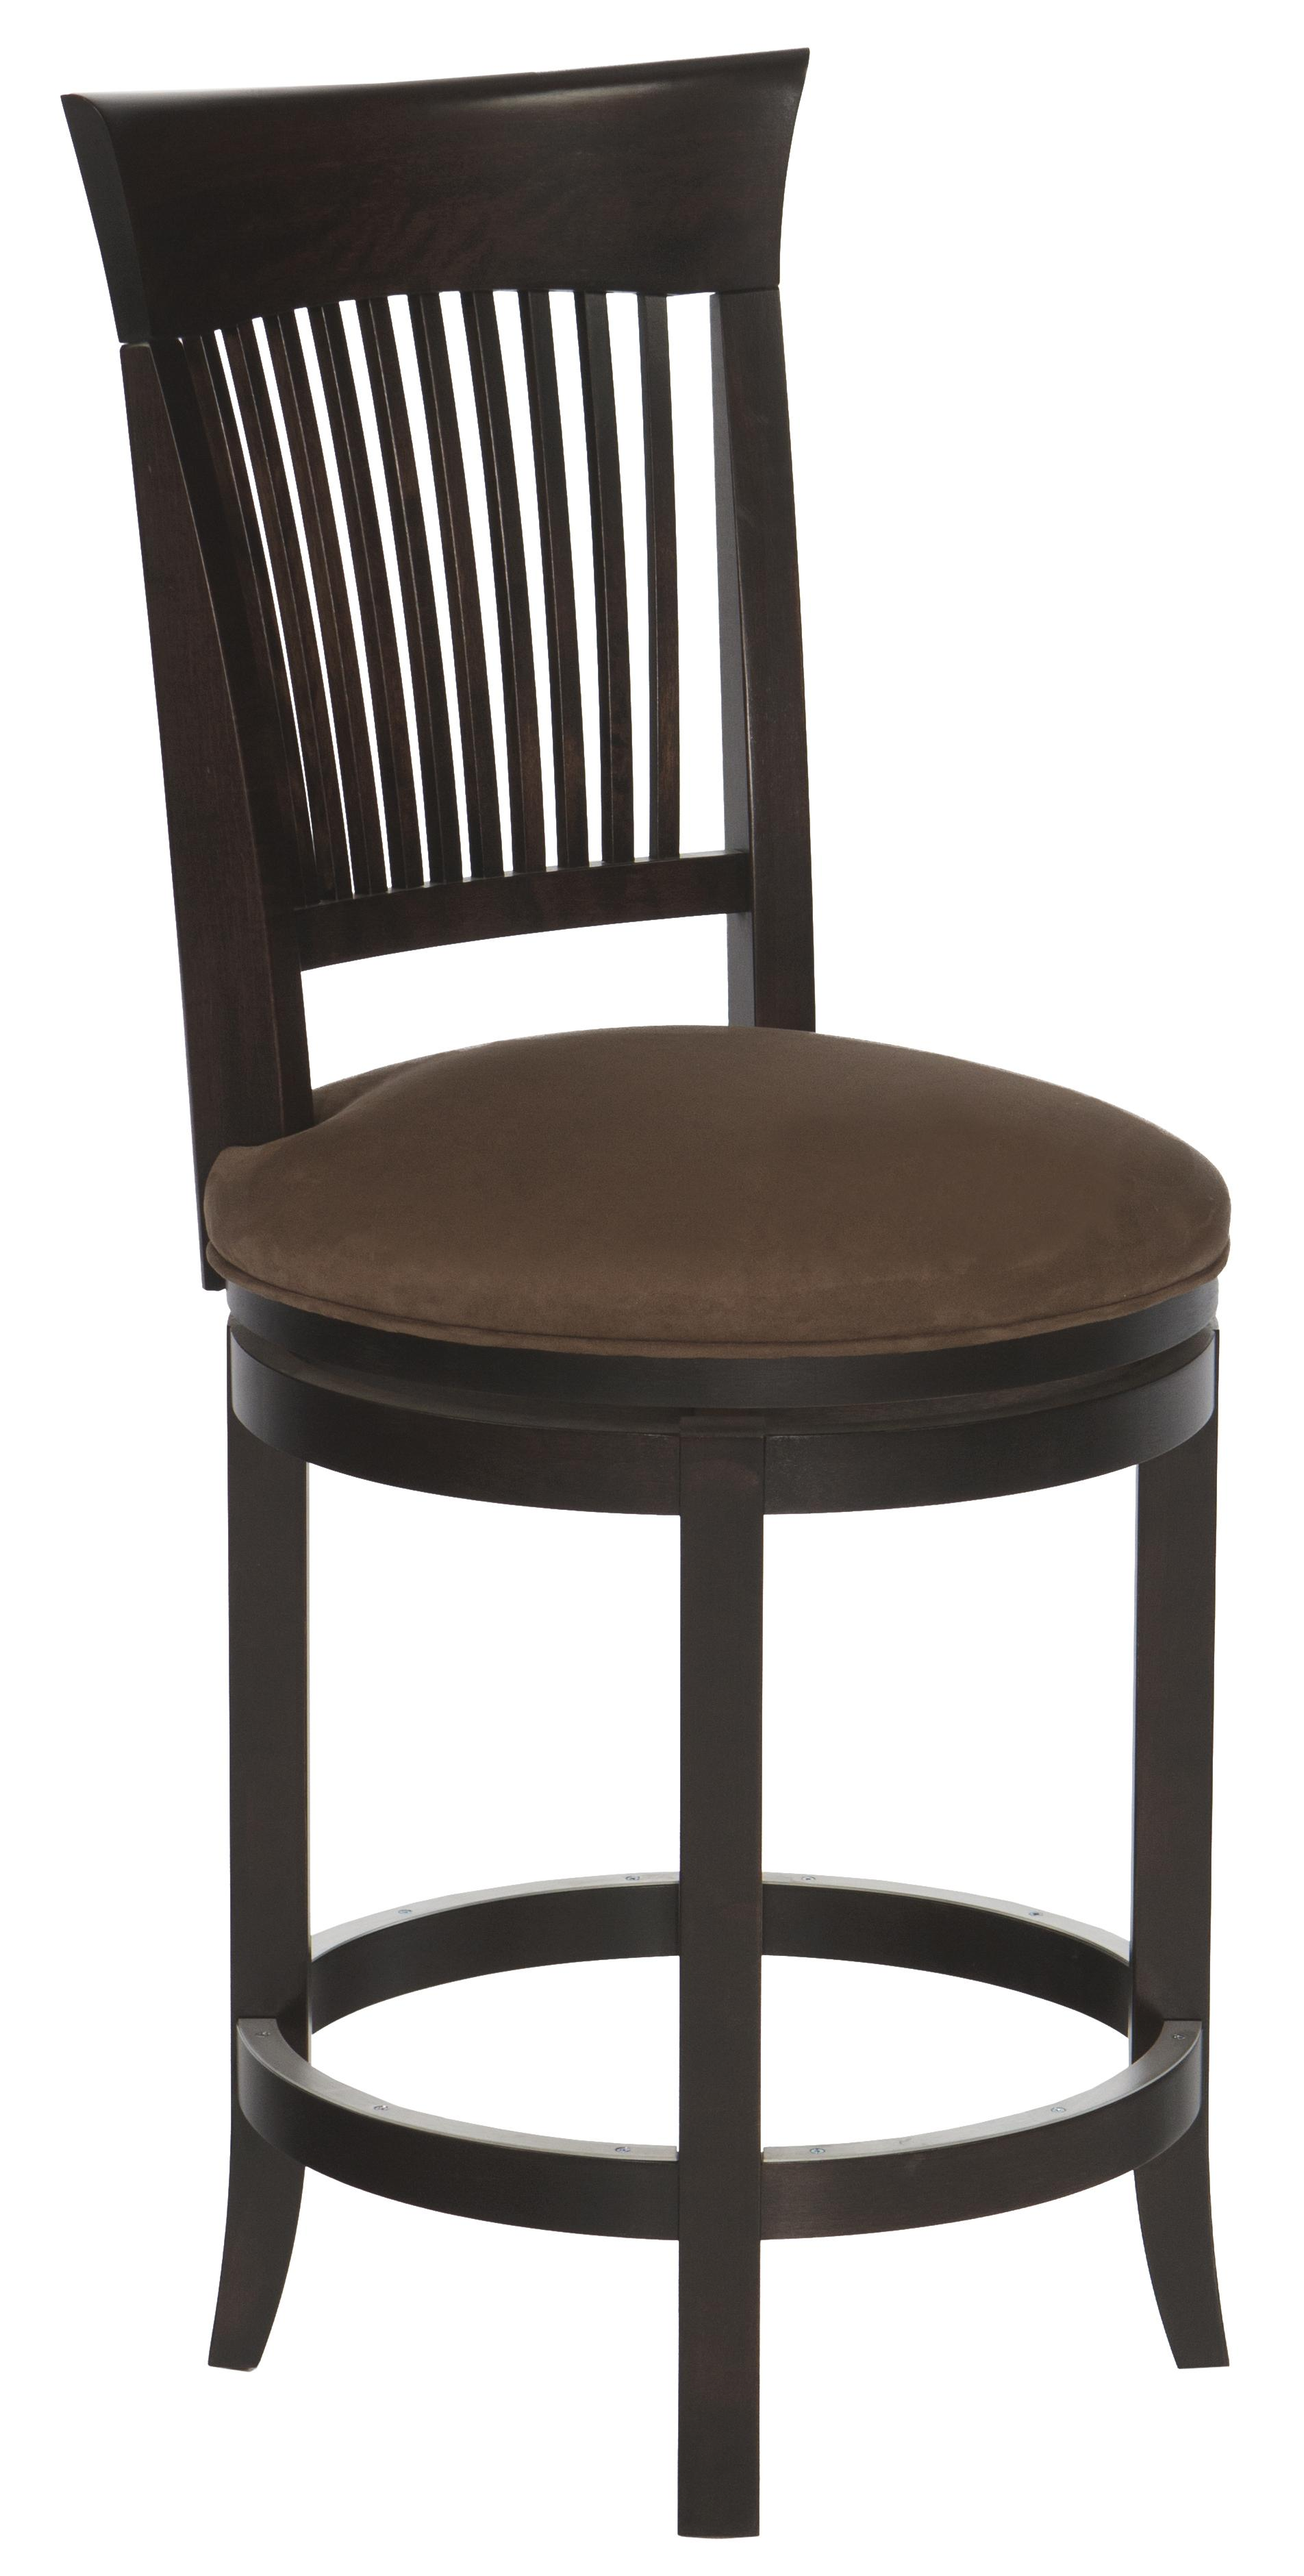 Canadel Bar Stools Customizable 26 Quot Upholstered Swivel